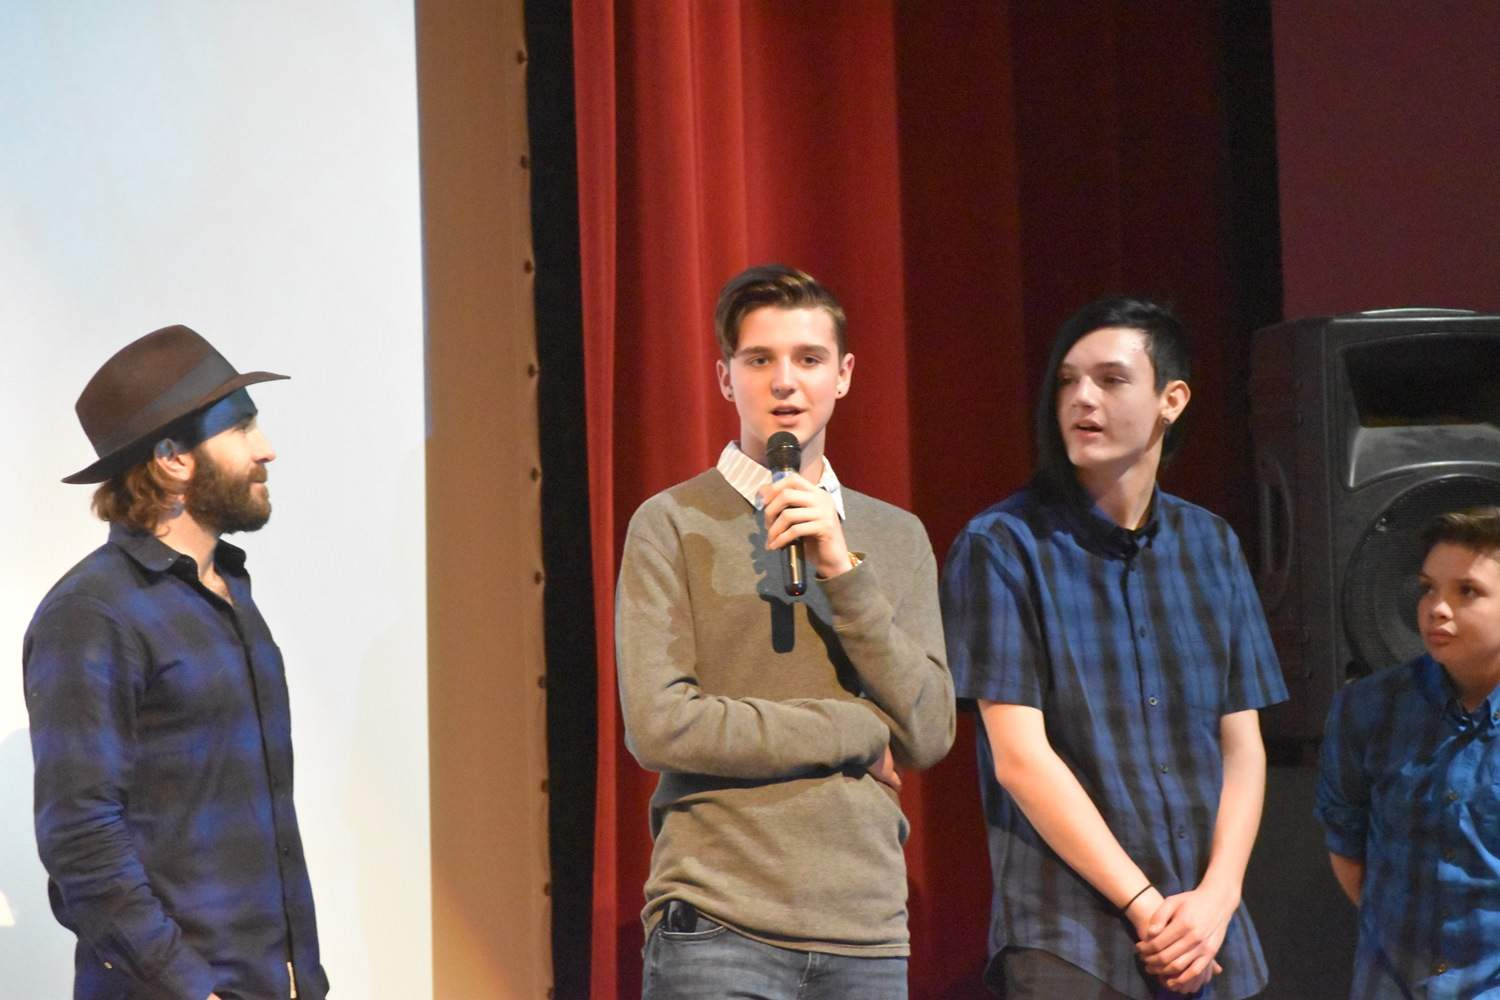 Gabe Cain, a Herrin High School freshman, speaks during the Q&A session. Cain had no previous acting or performing experience, but landed the role of Willie Proctor after auditions.